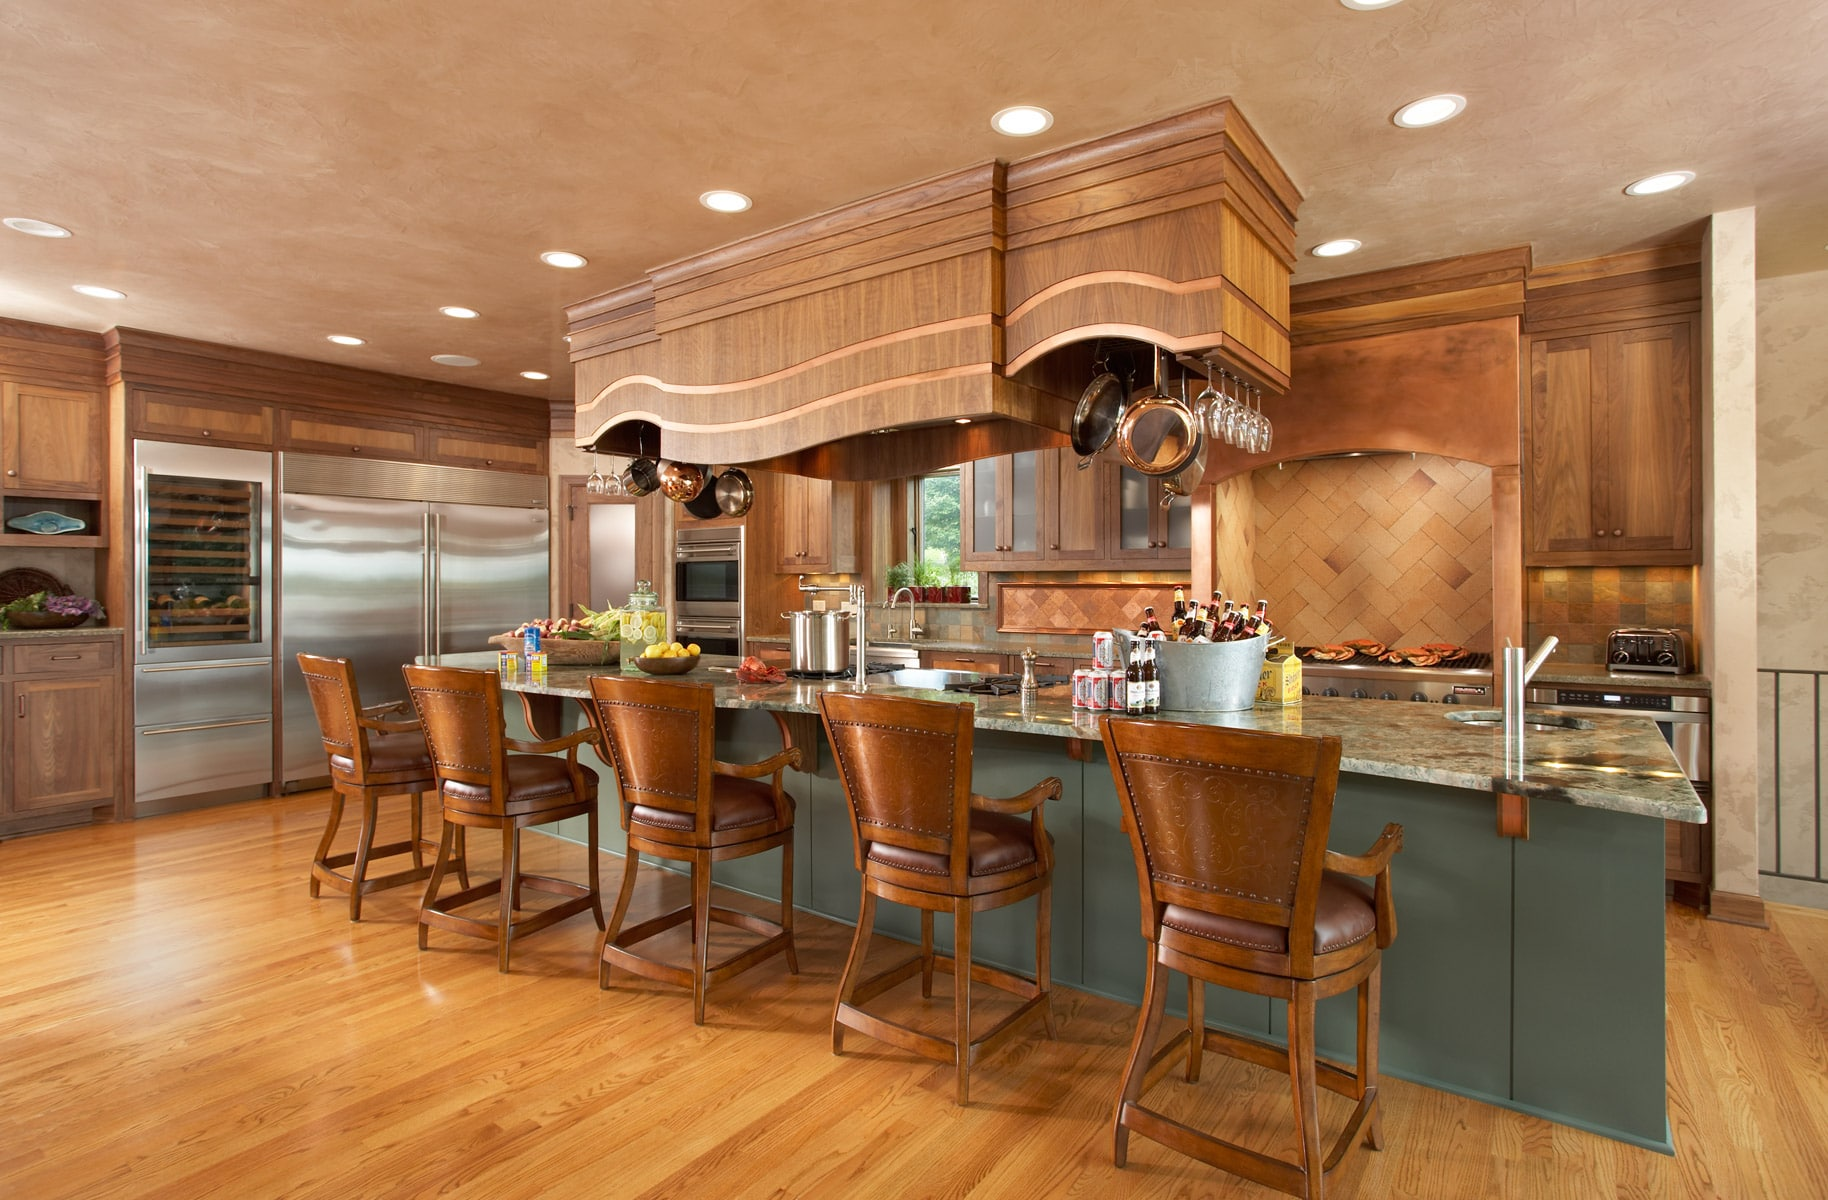 Grand-Scale-Gourmet-Kitchen-Minneapolis-interior-designer.jpeg